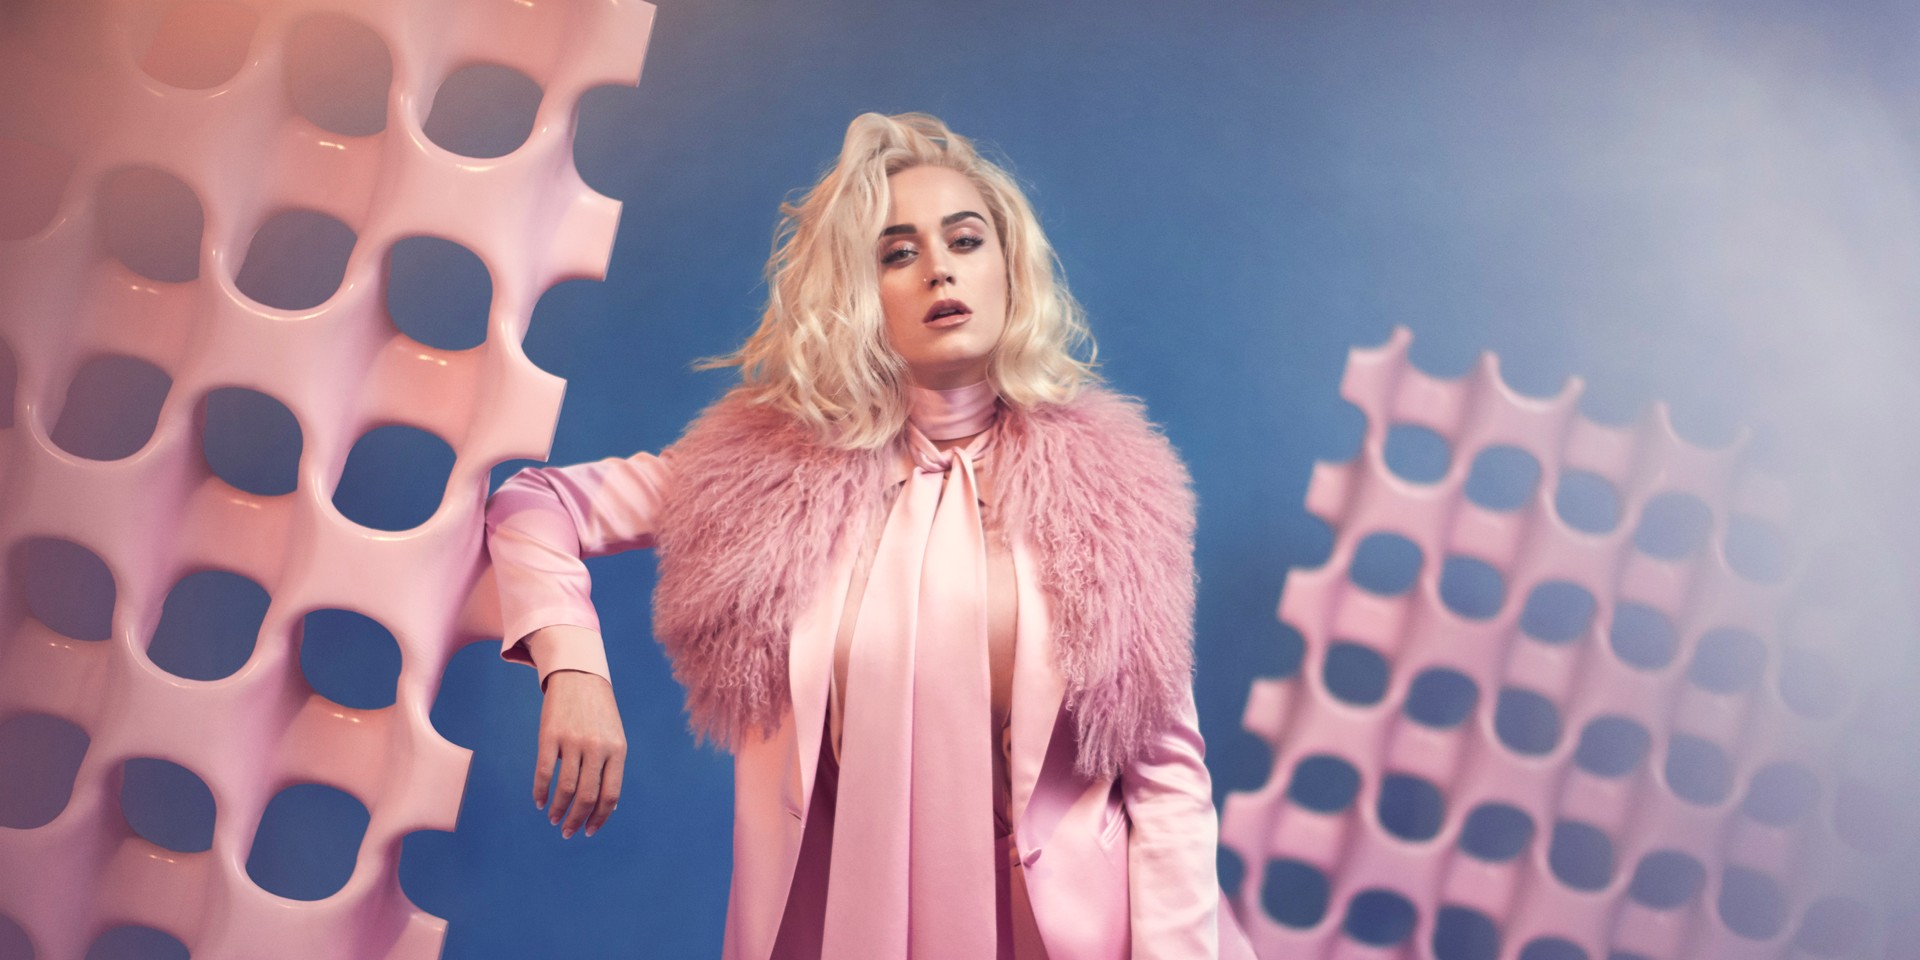 Katy Perry releases new single and music video, 'Never Really Over' – watch